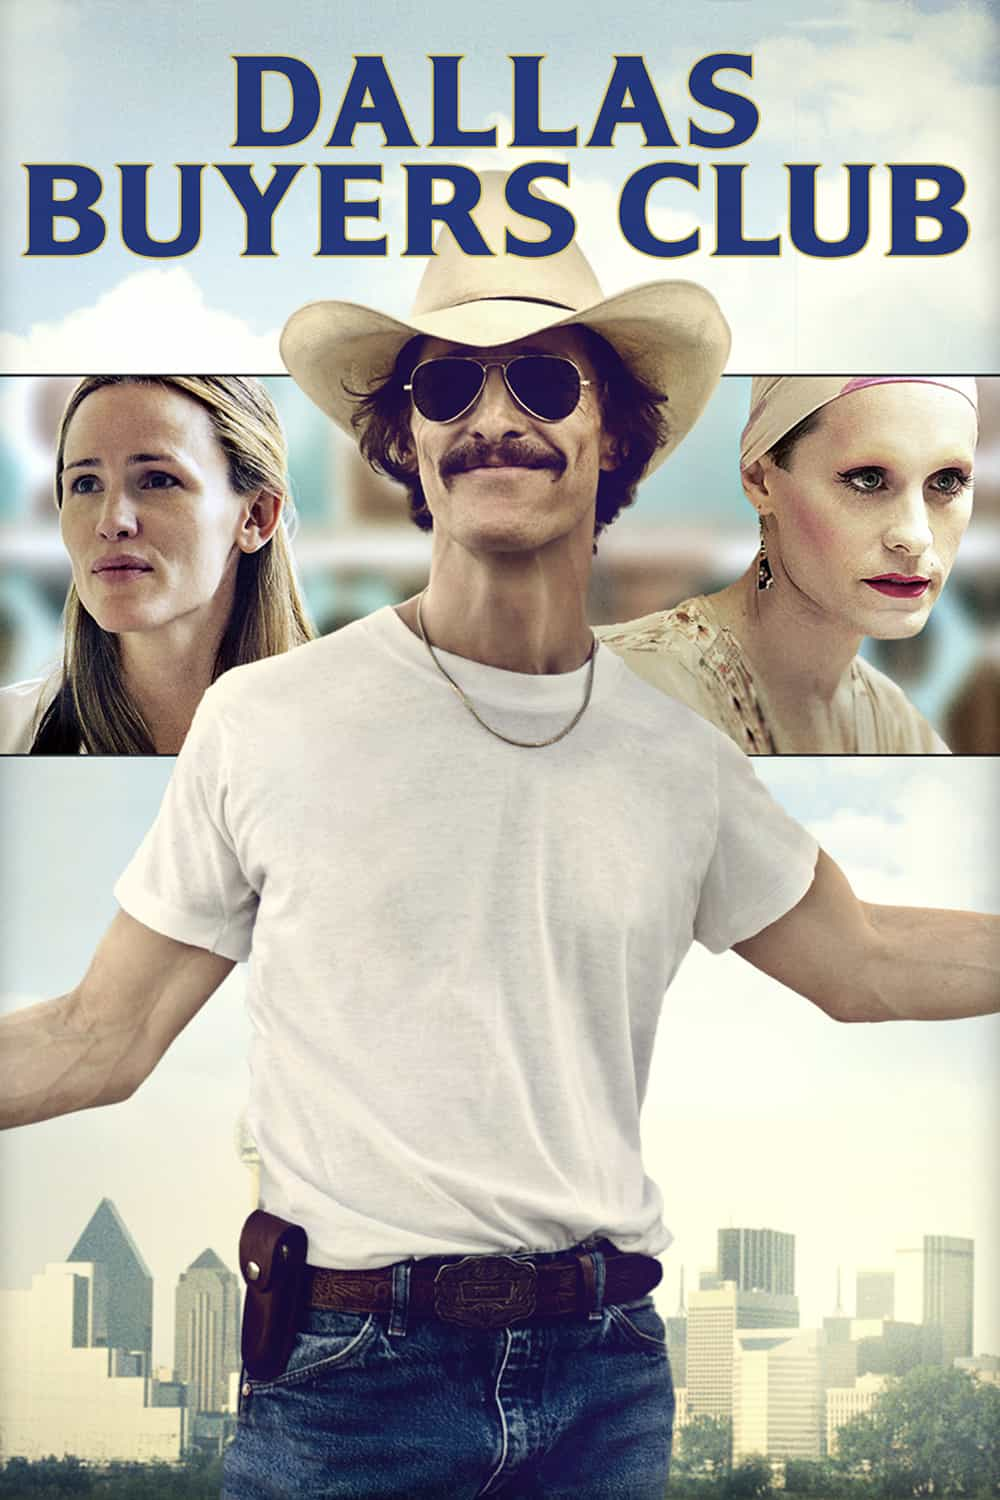 Dallas Buyers Club, 2013